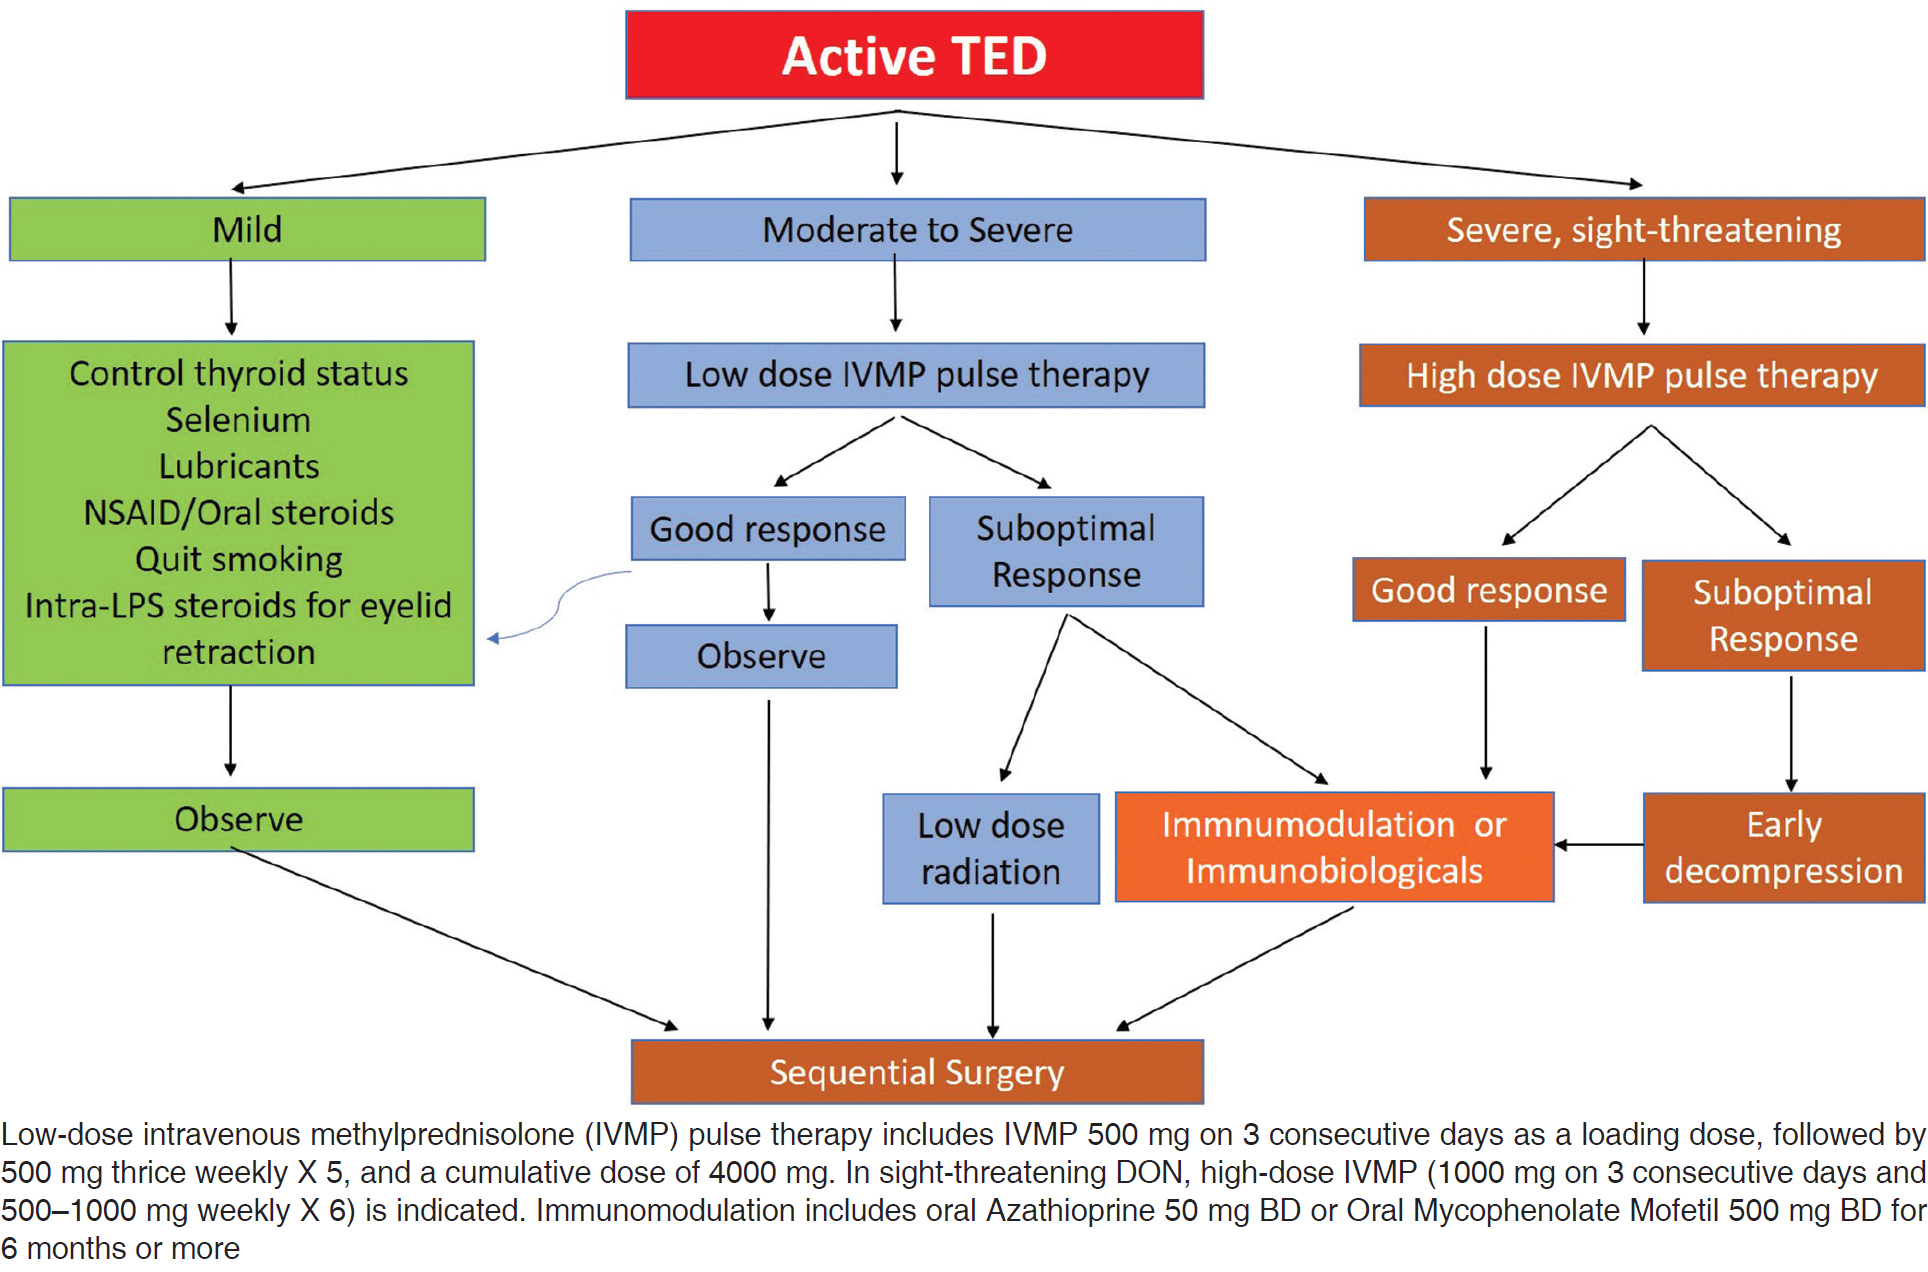 Figure 1: Standard sequential management in active TED